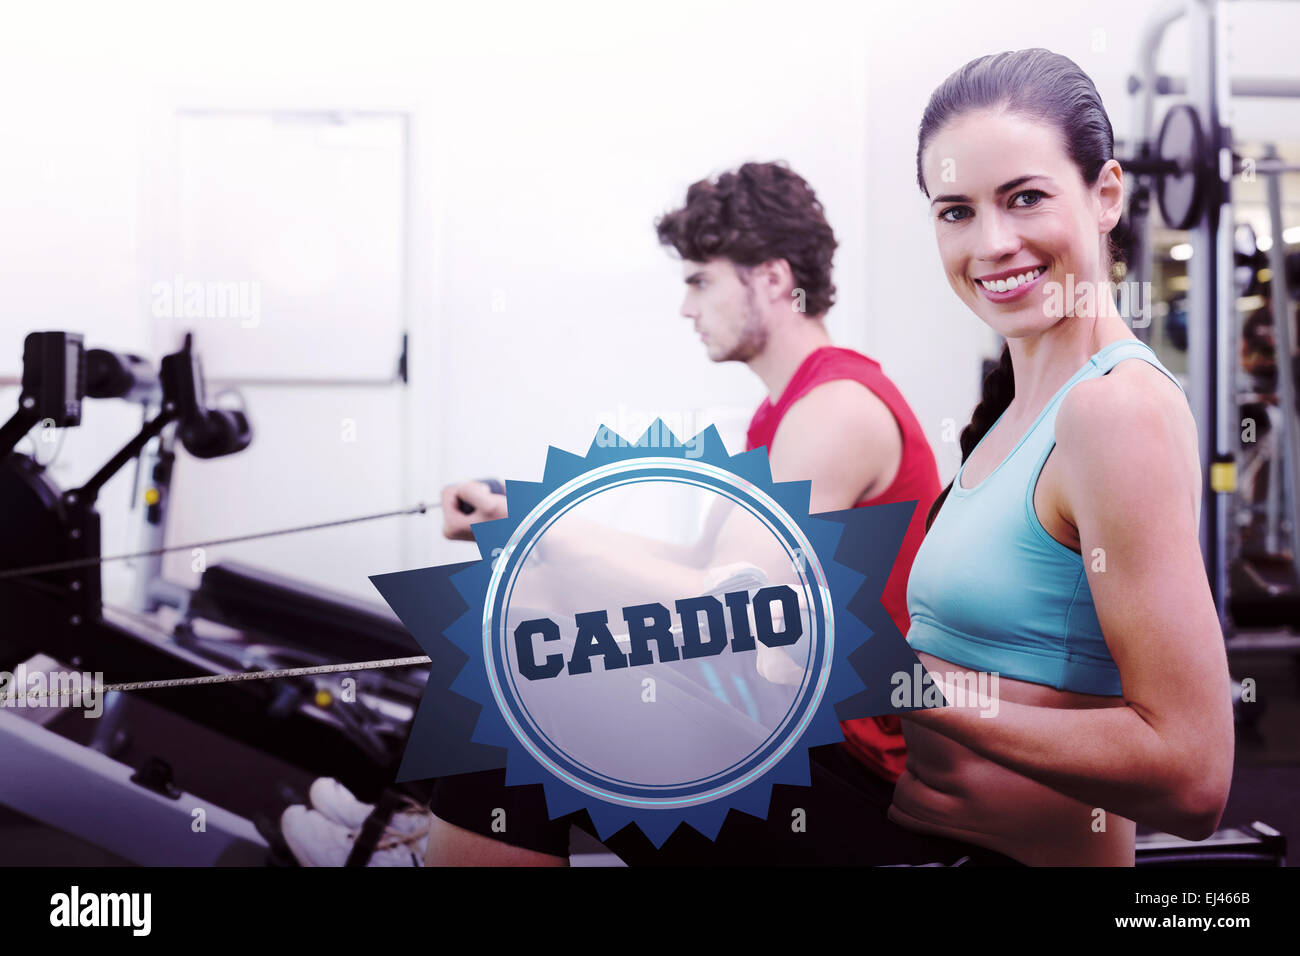 The word cardio and smiling brunette working out - Stock Image